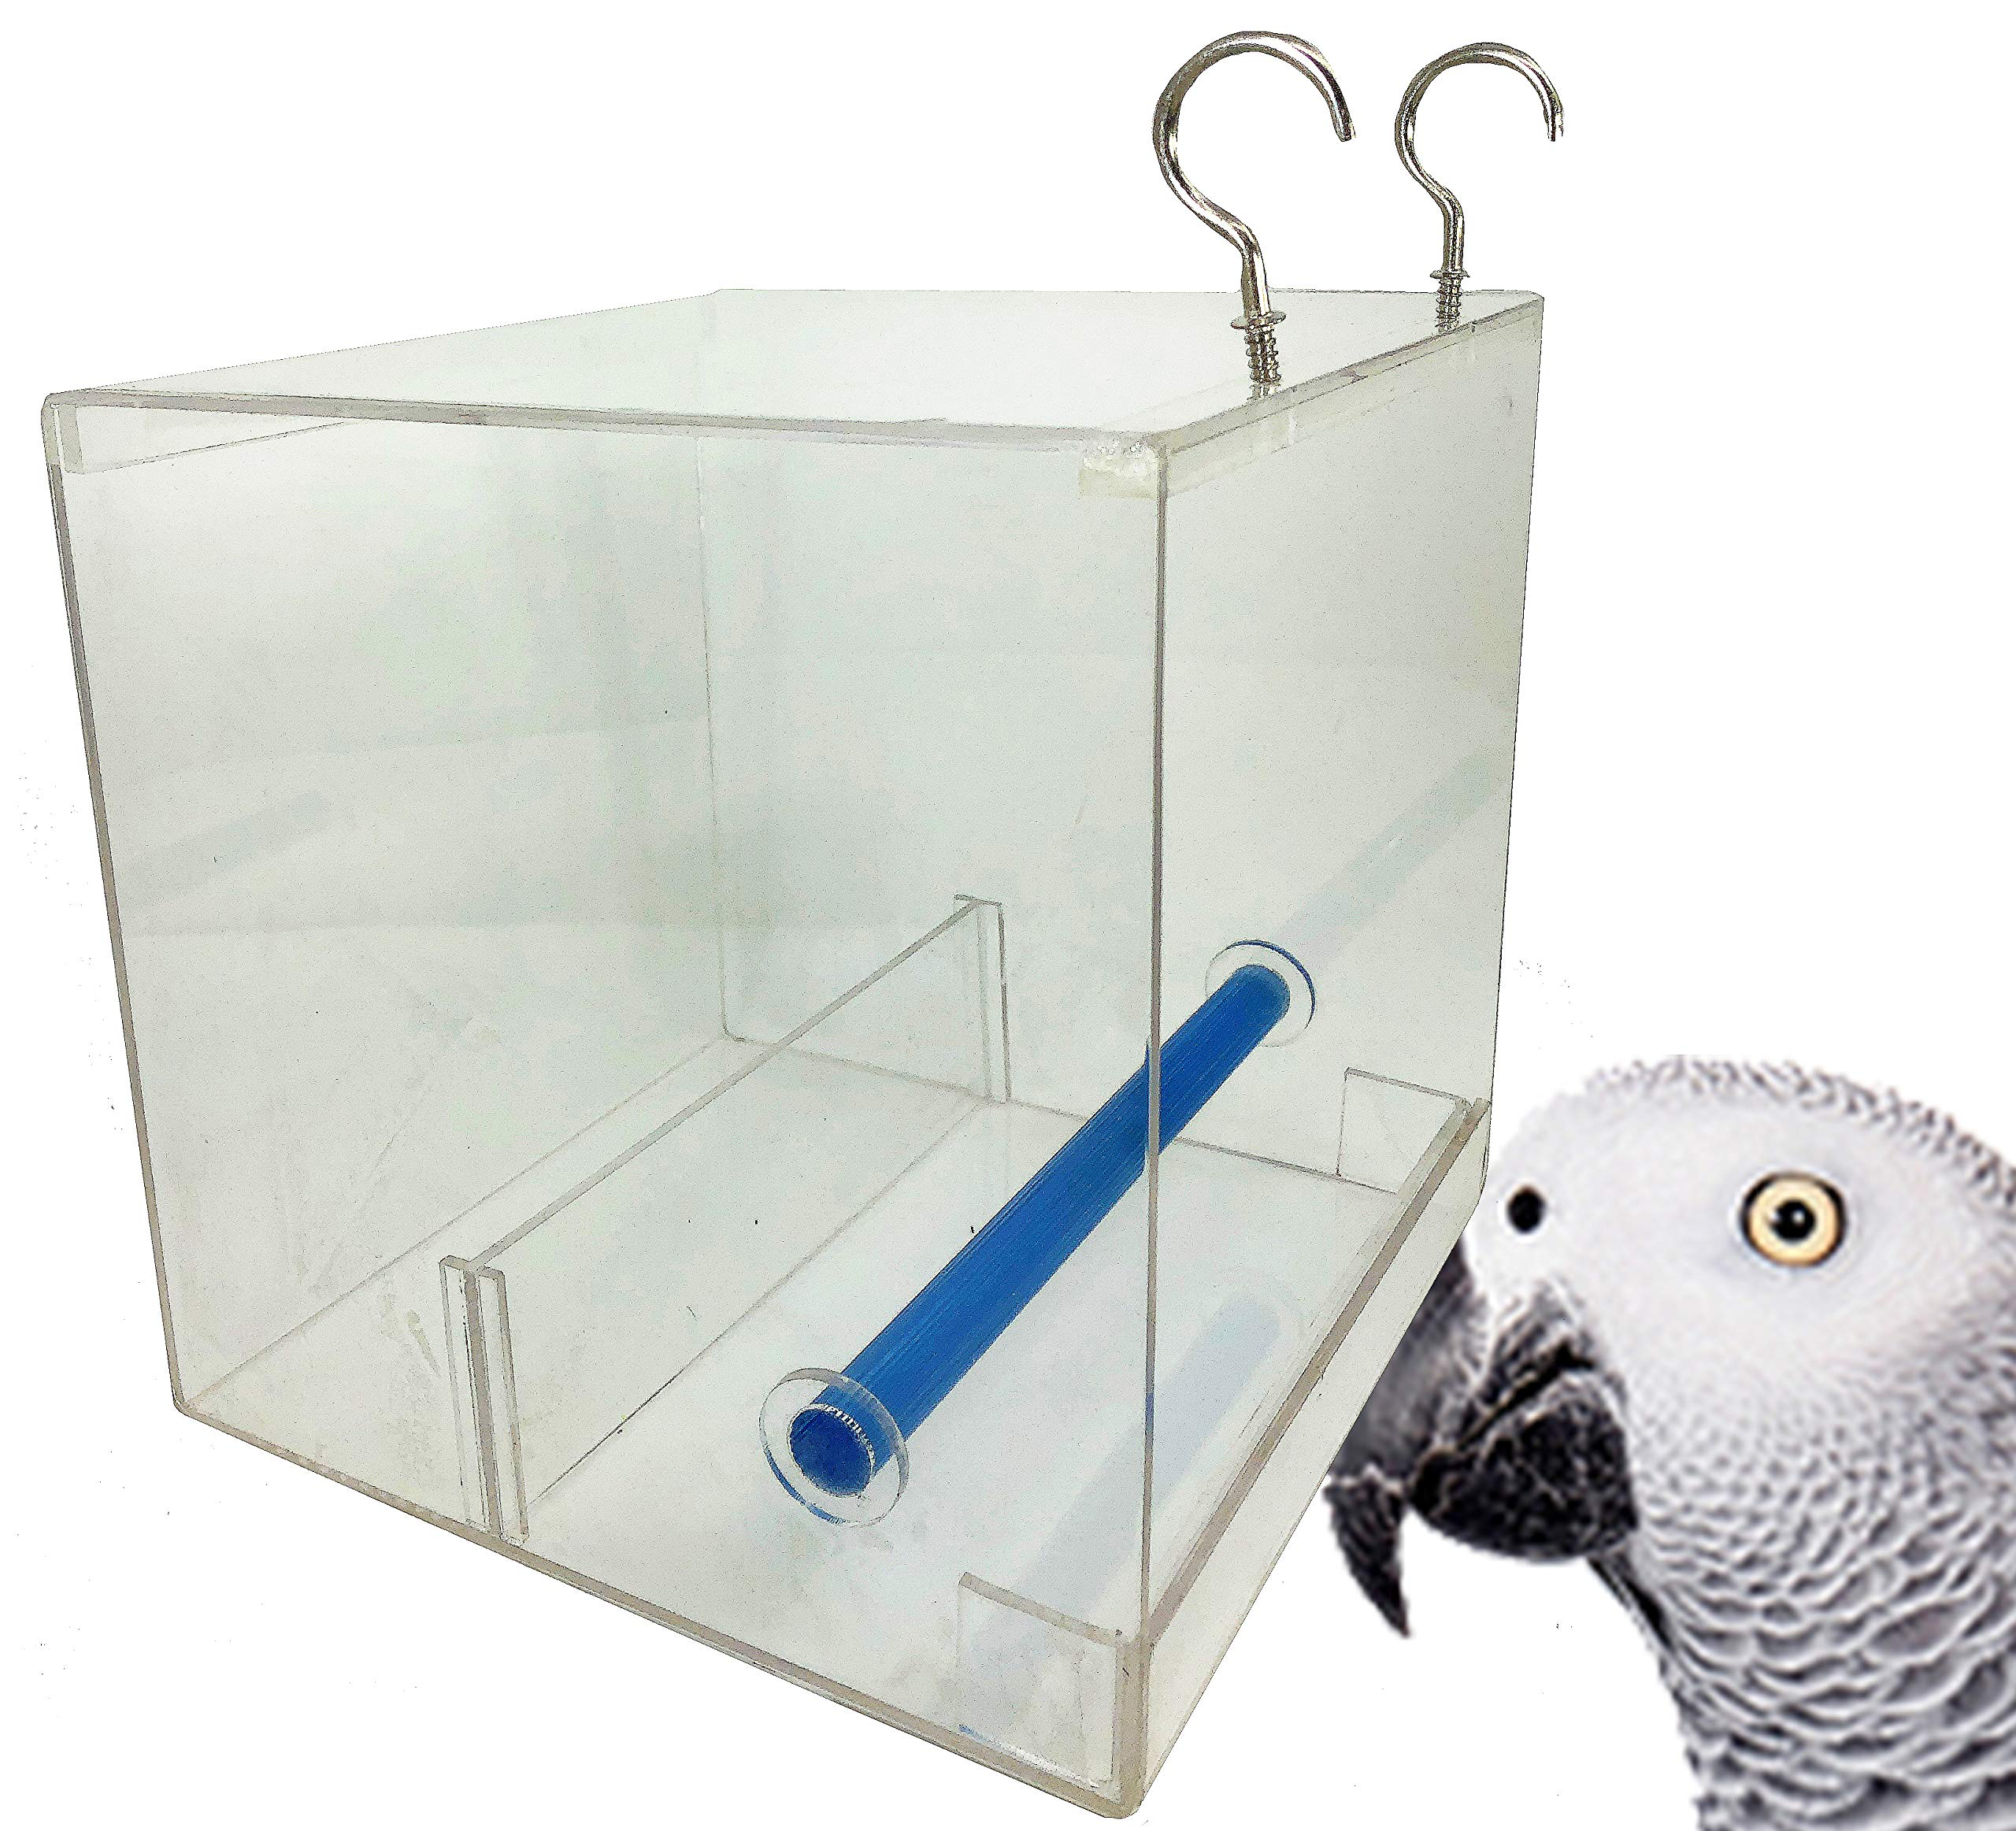 LARGE TWEEKY CLEAN Seed Bird Feeder parrot toy toys african grey amazon tidy by Bonka Bird Toys